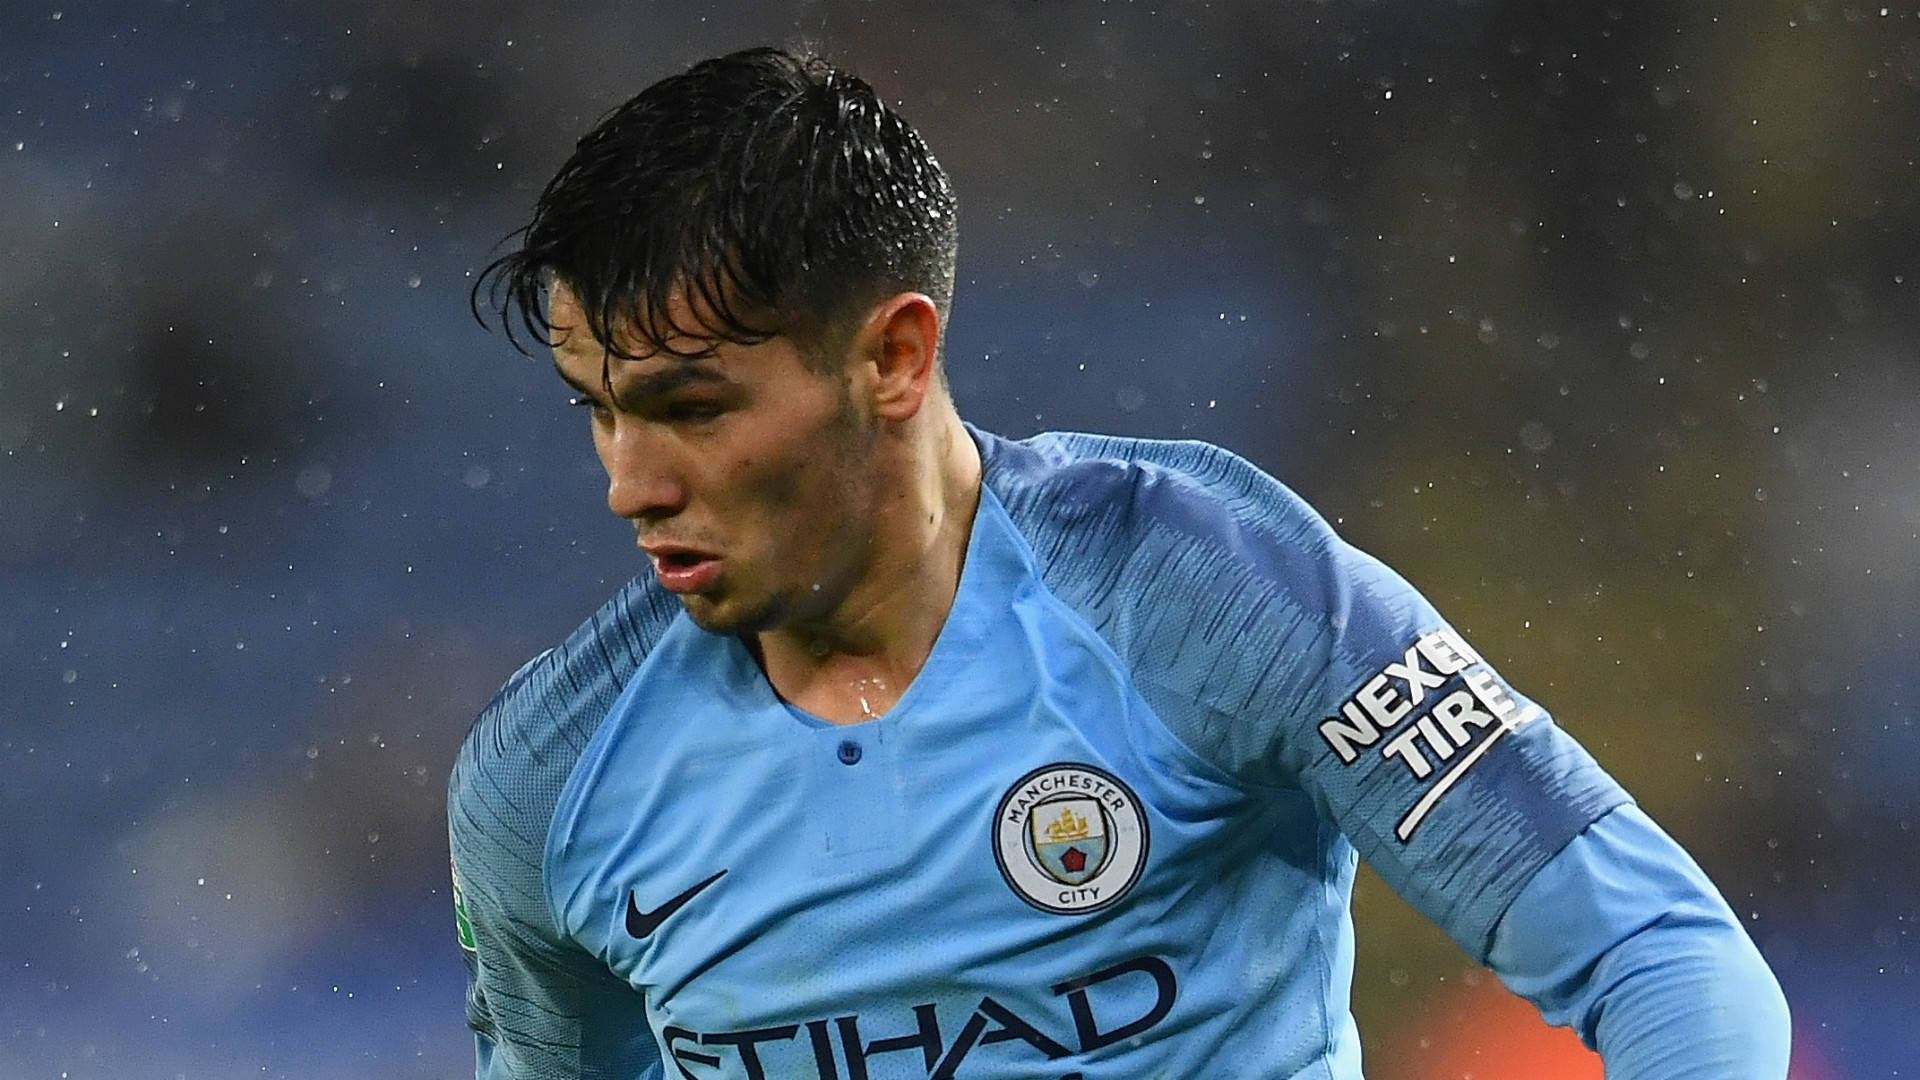 Manchester City's Brahim Diaz close to completing Real Madrid transfer